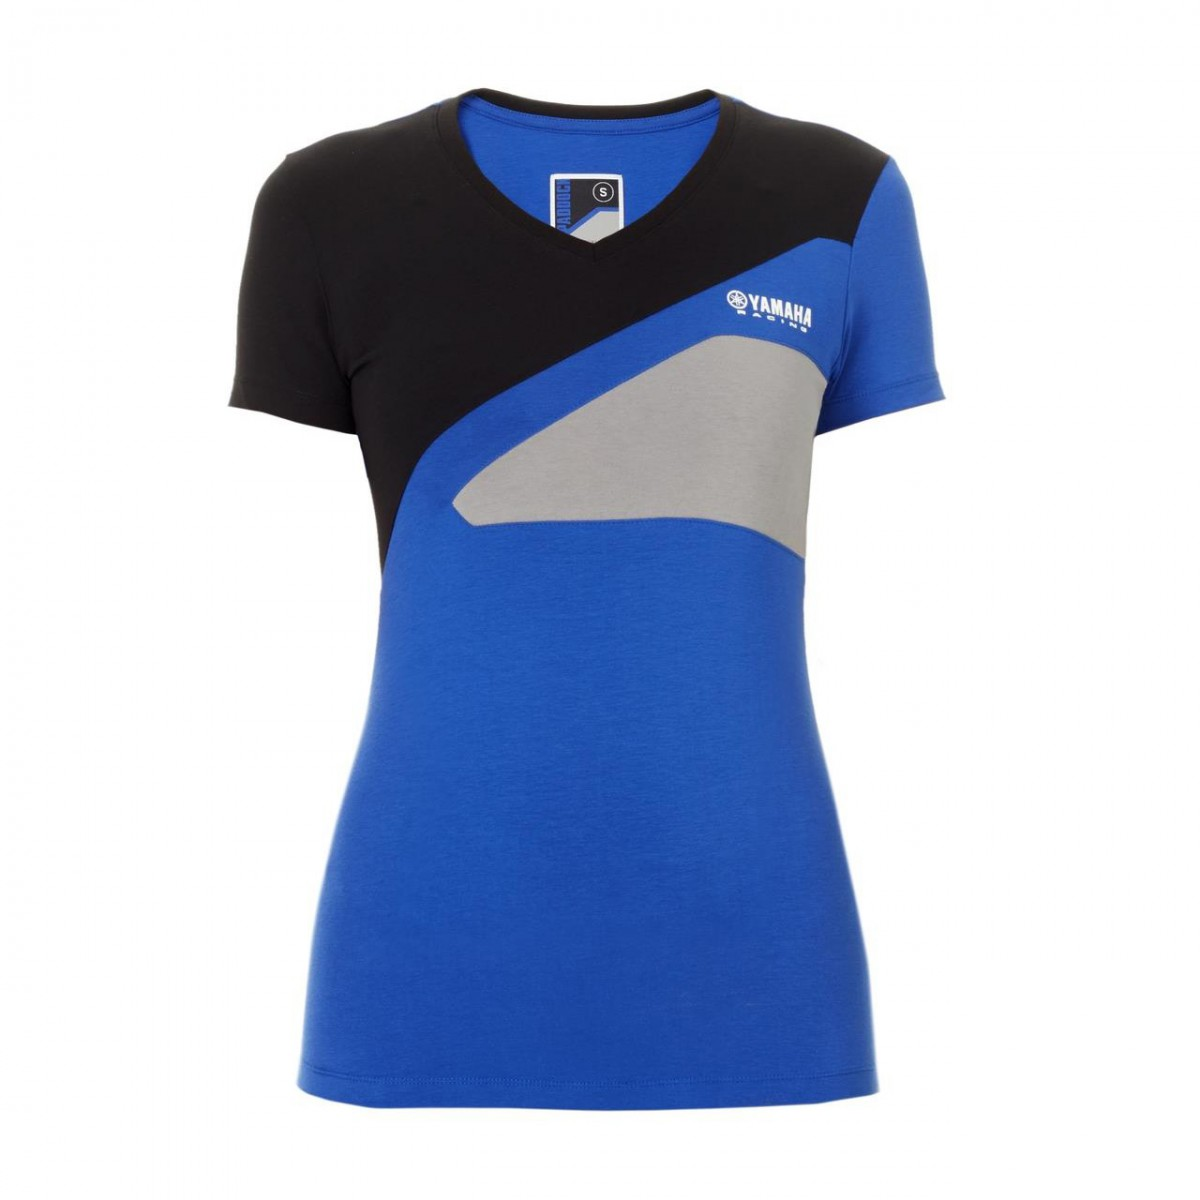 Yamaha Paddock Blue Race Women's T-shirt XL